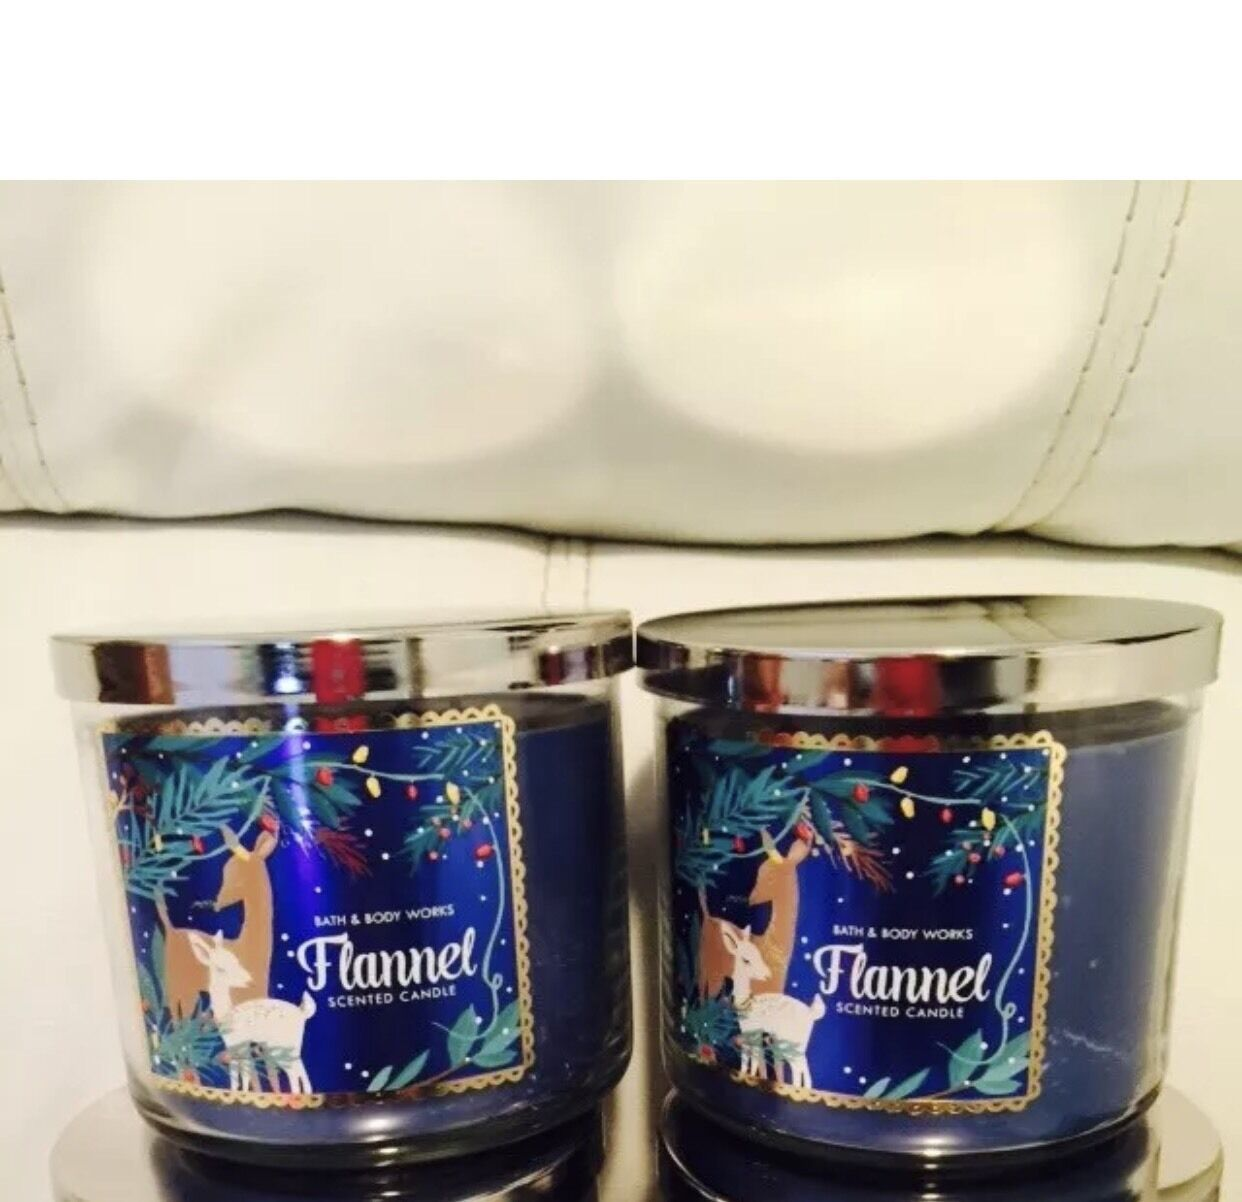 2 Bath & Body Works Flannel 14.5 OZ 3 Wick Large Candle